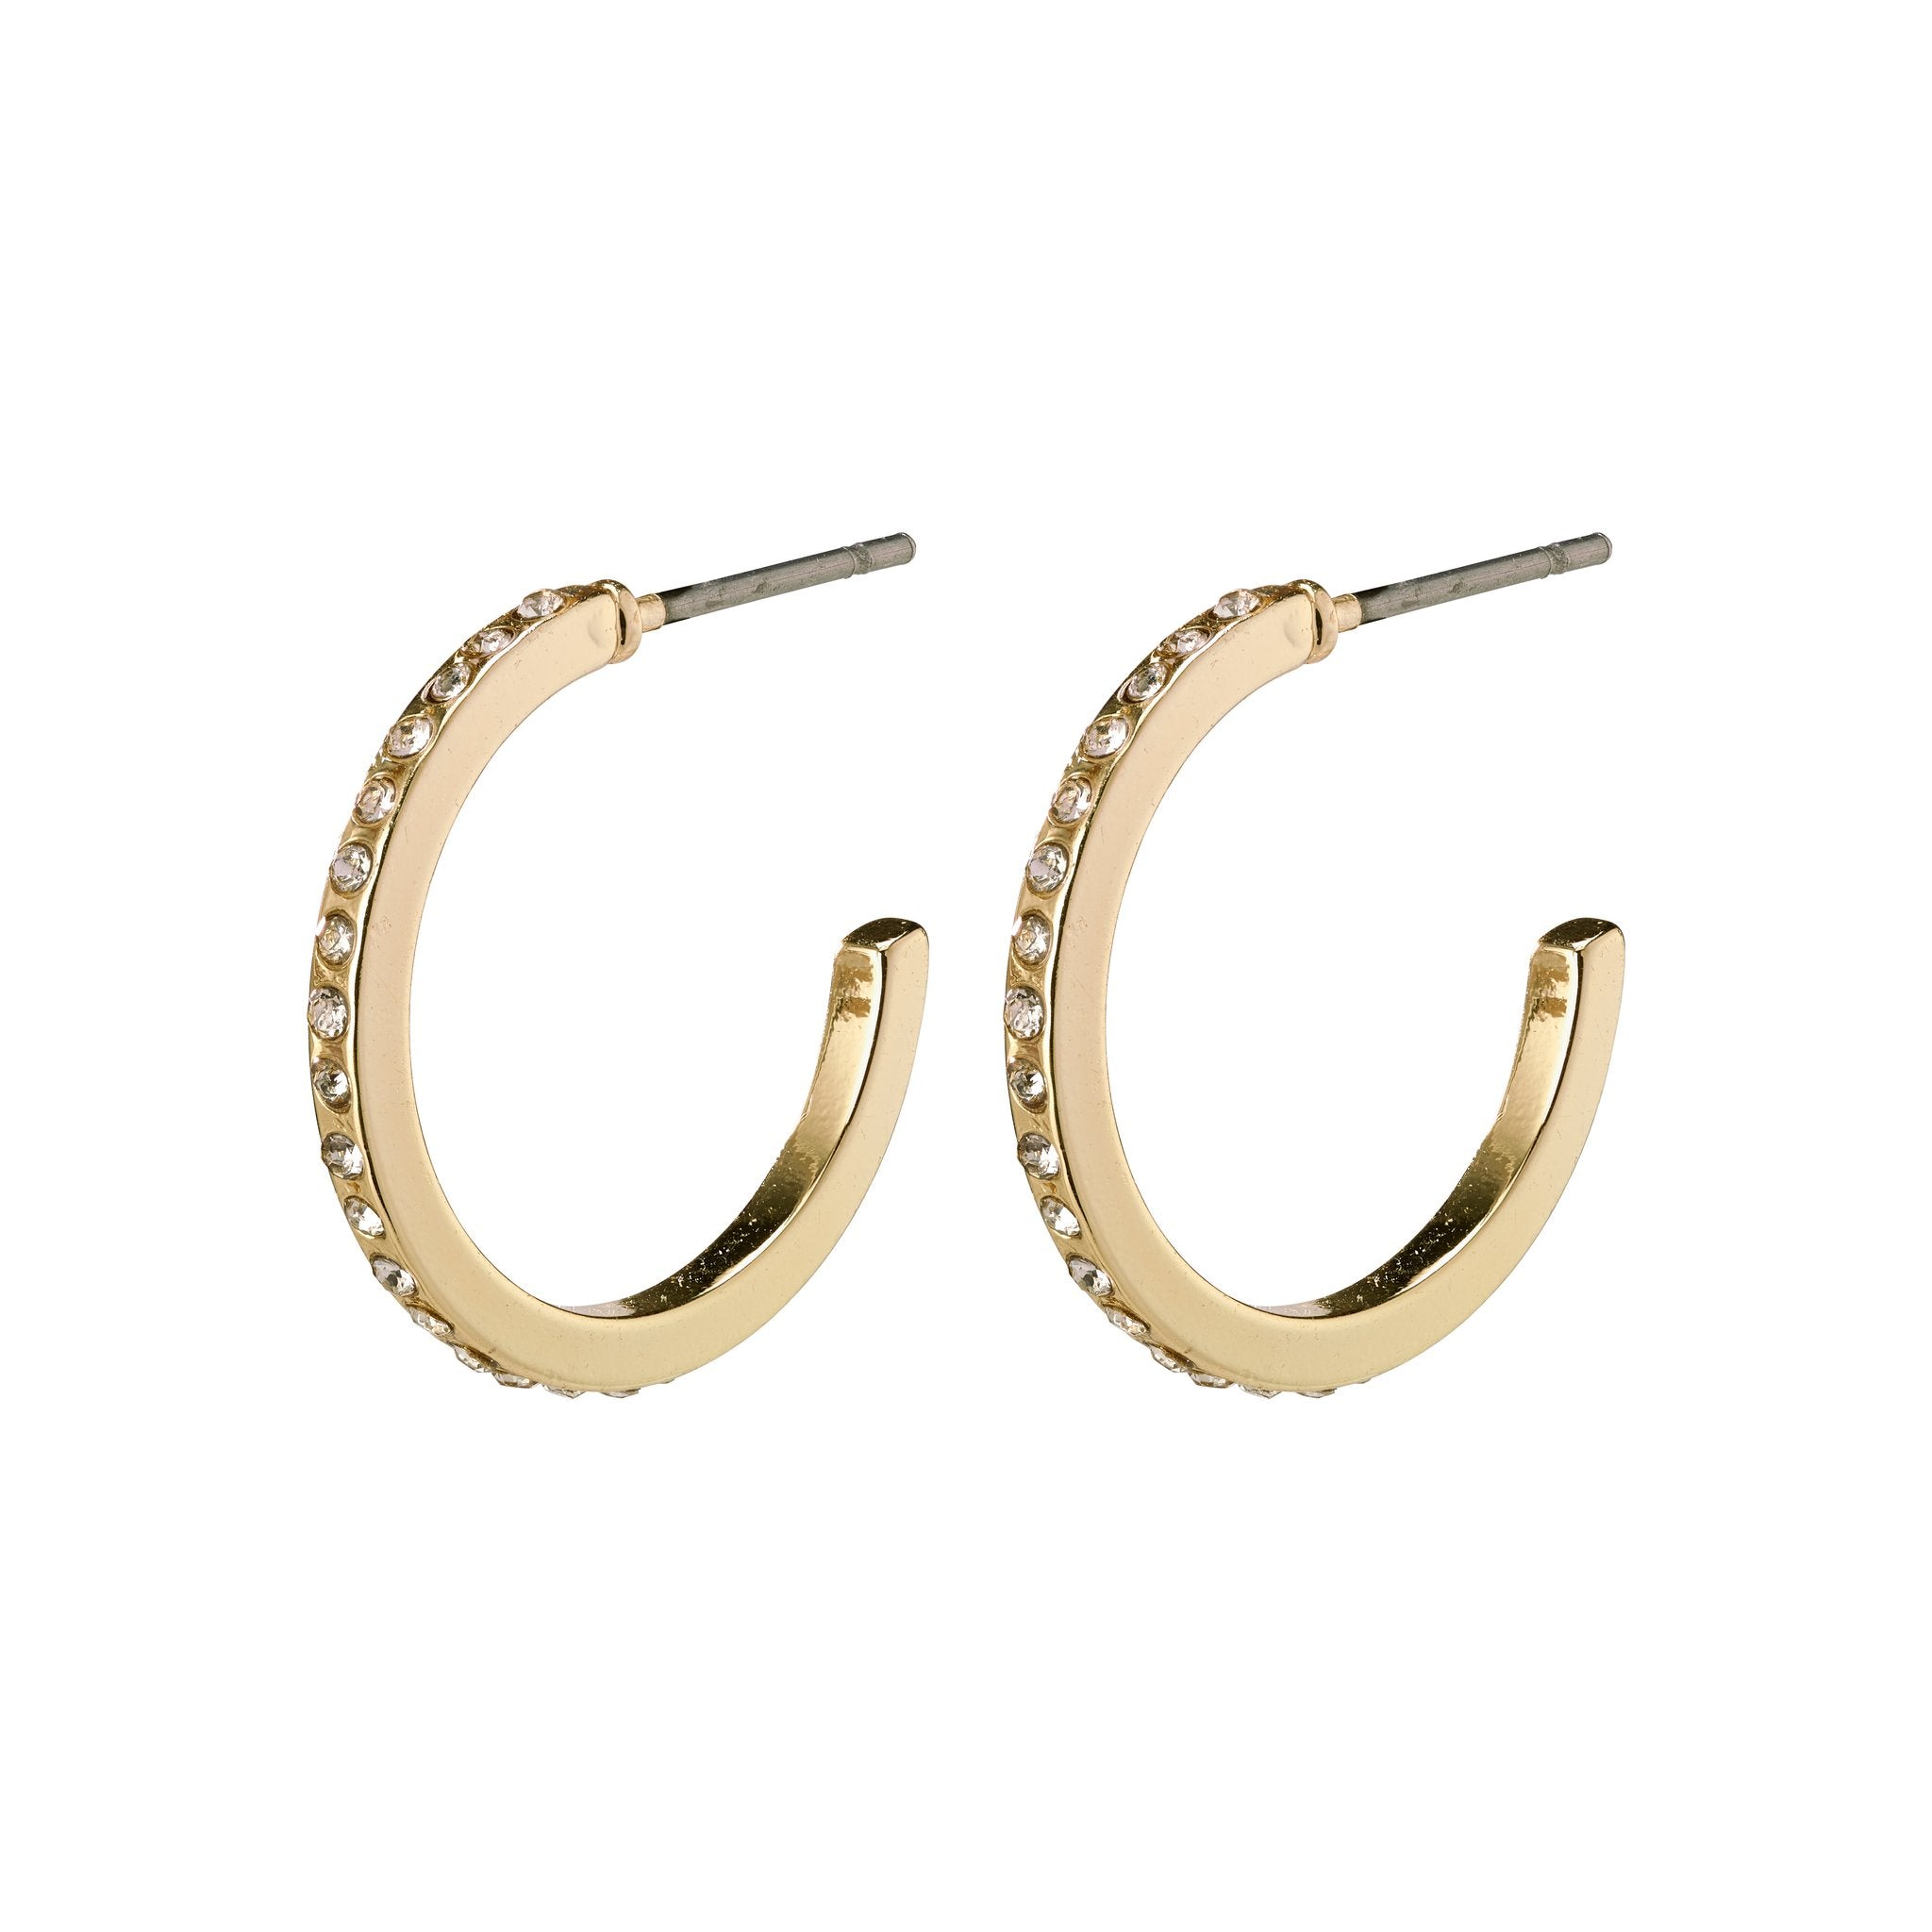 Roberta Pi Earrings - Gold Plated Crystal - 17mm